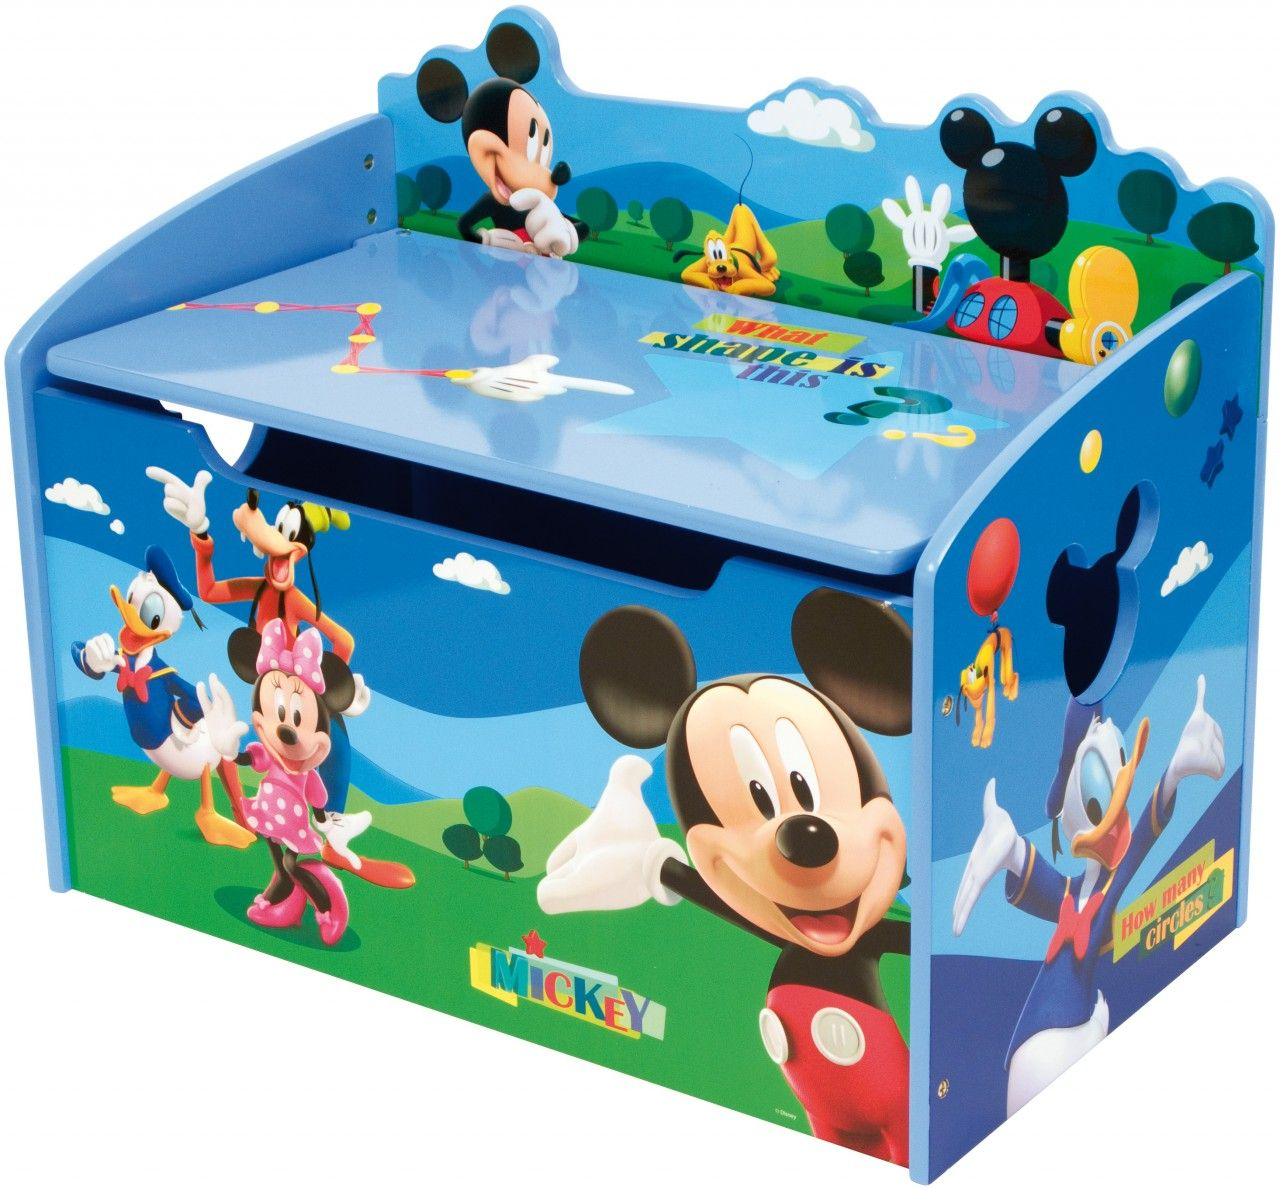 Mickey Mouse Clubhouse Toy Box | Clubs hotel para gatos UC ...